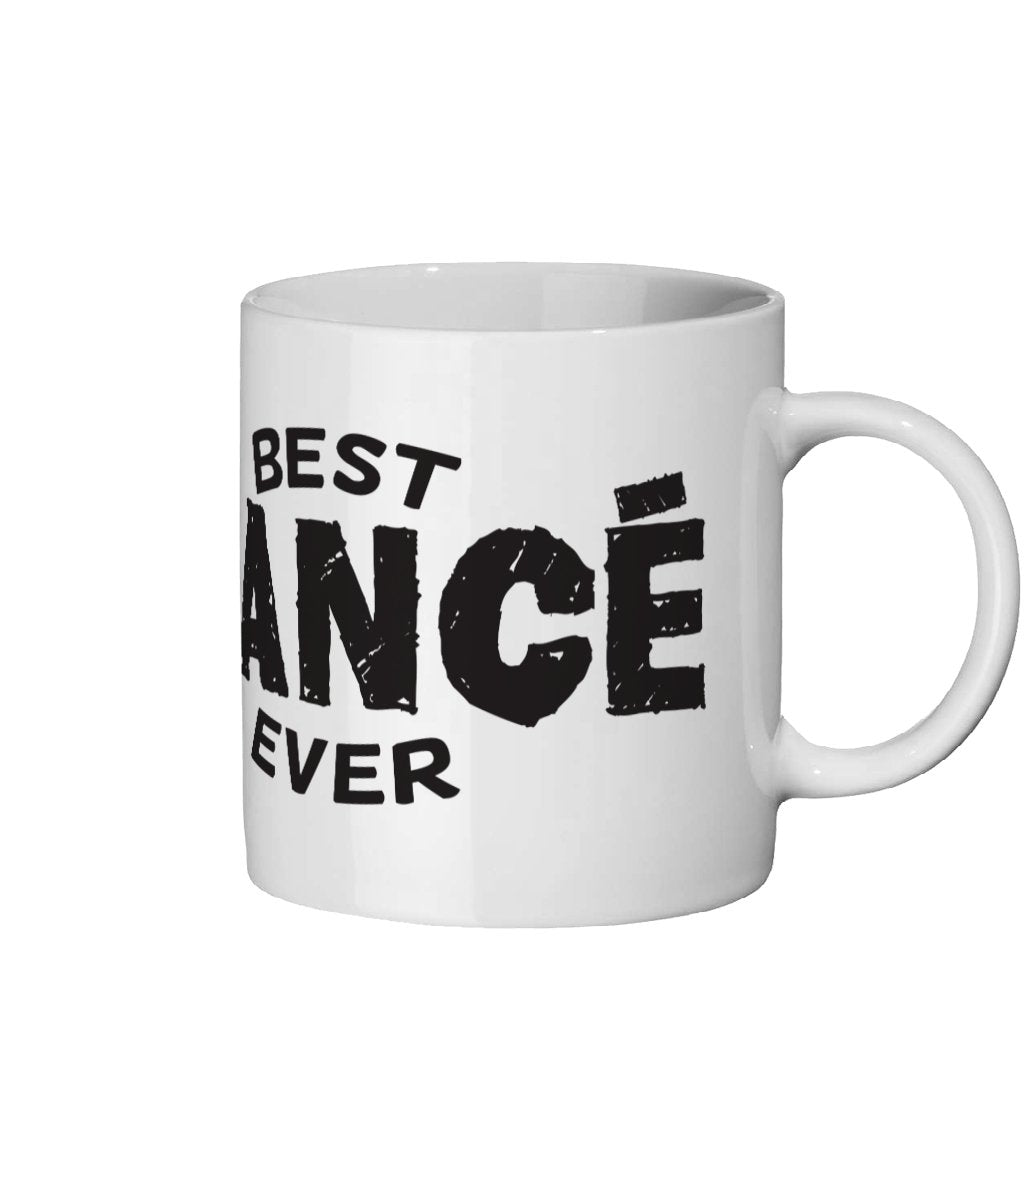 Best Fiance Ever Ceramic Mug 11oz - The Gift Project